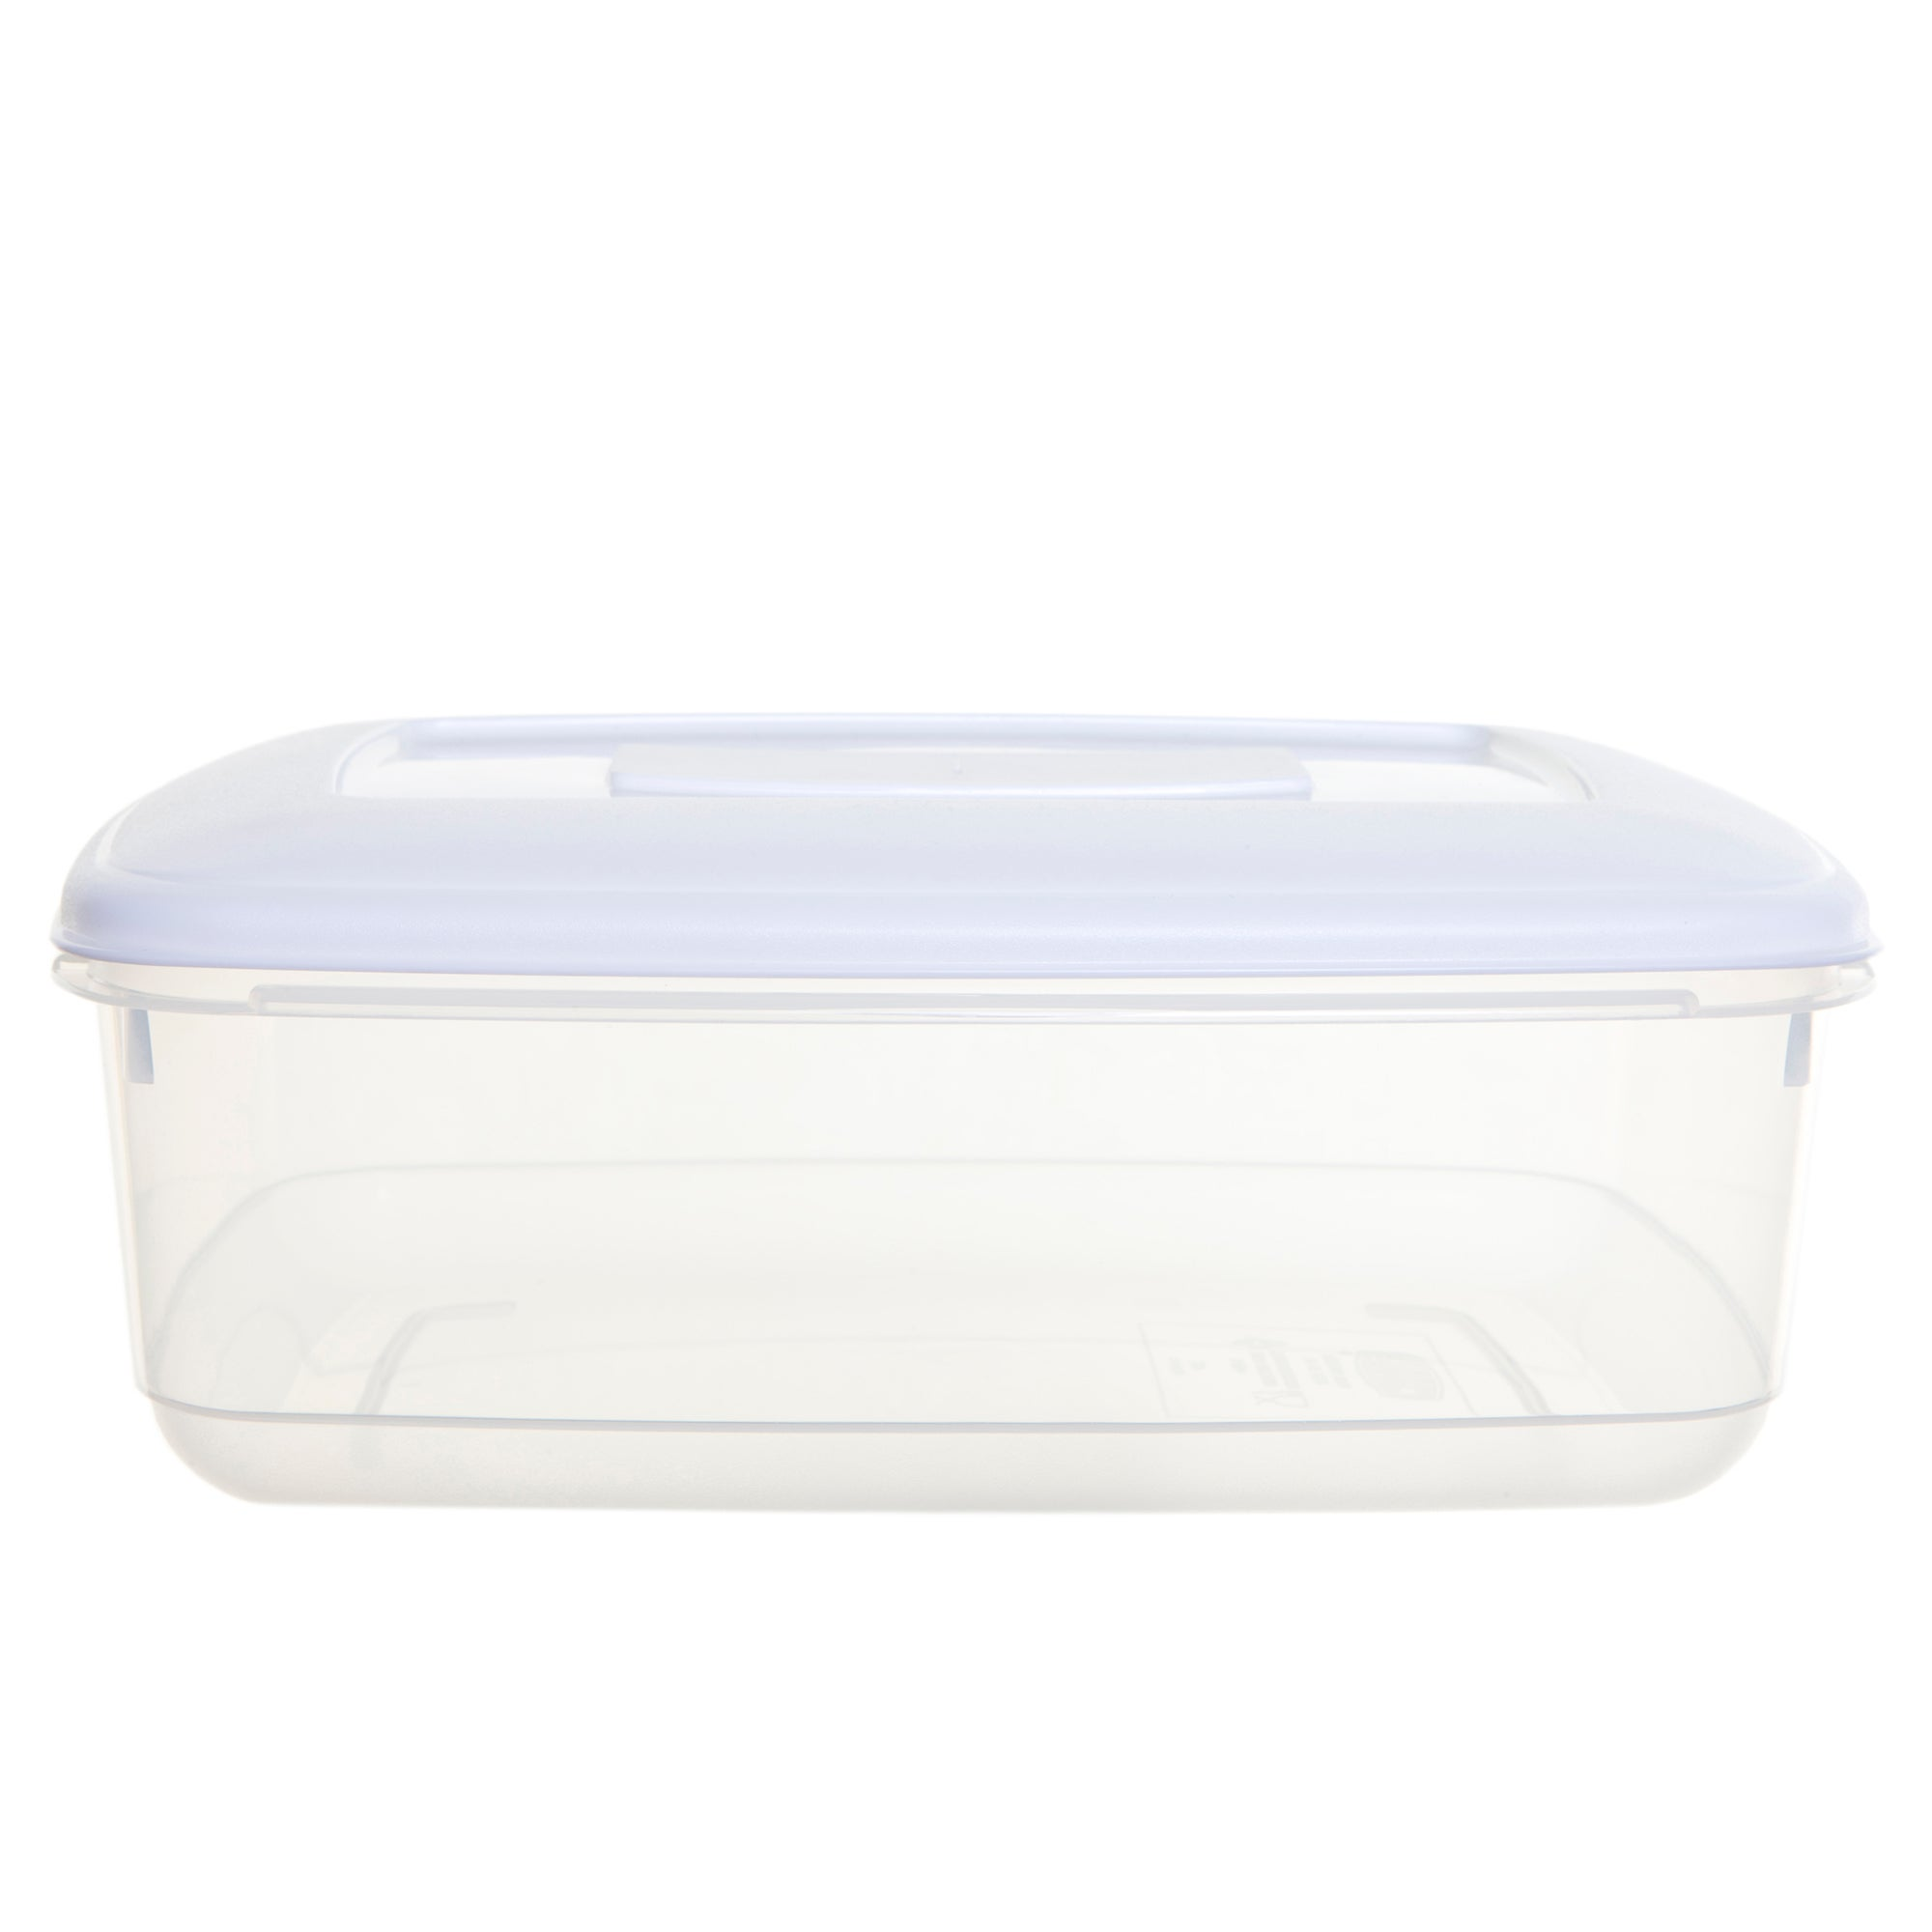 4 Litre Whitefurze Food Storage Box